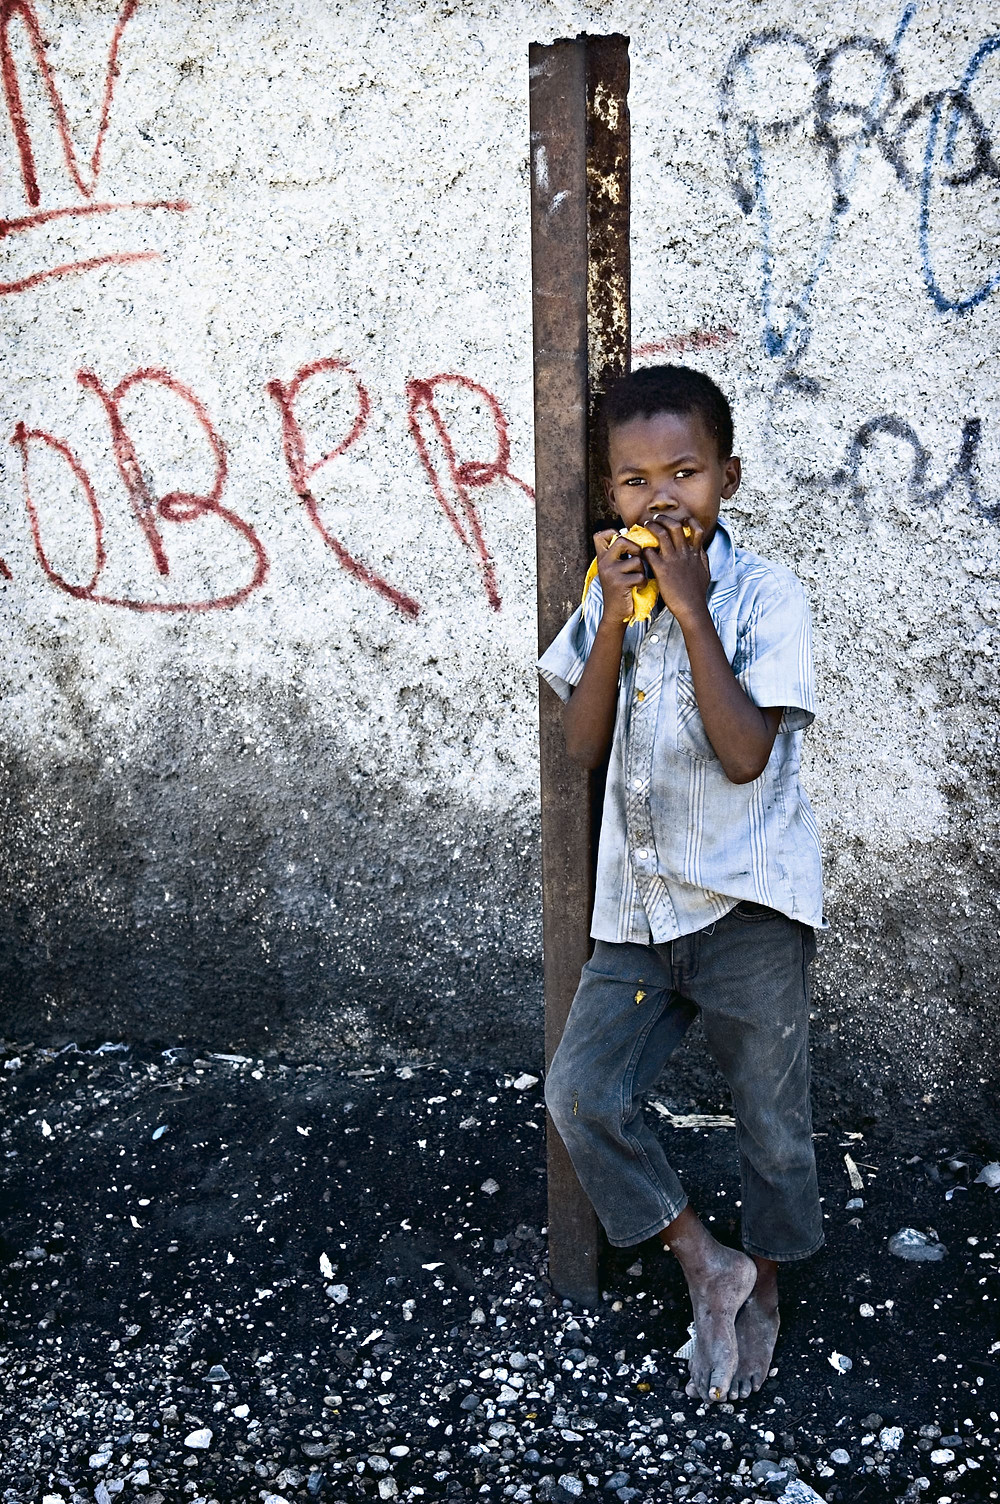 A street boy eats a mango. From the series 'The Haiti Project' a personal project shot in Cite Soleil, Haiti, March 2006.